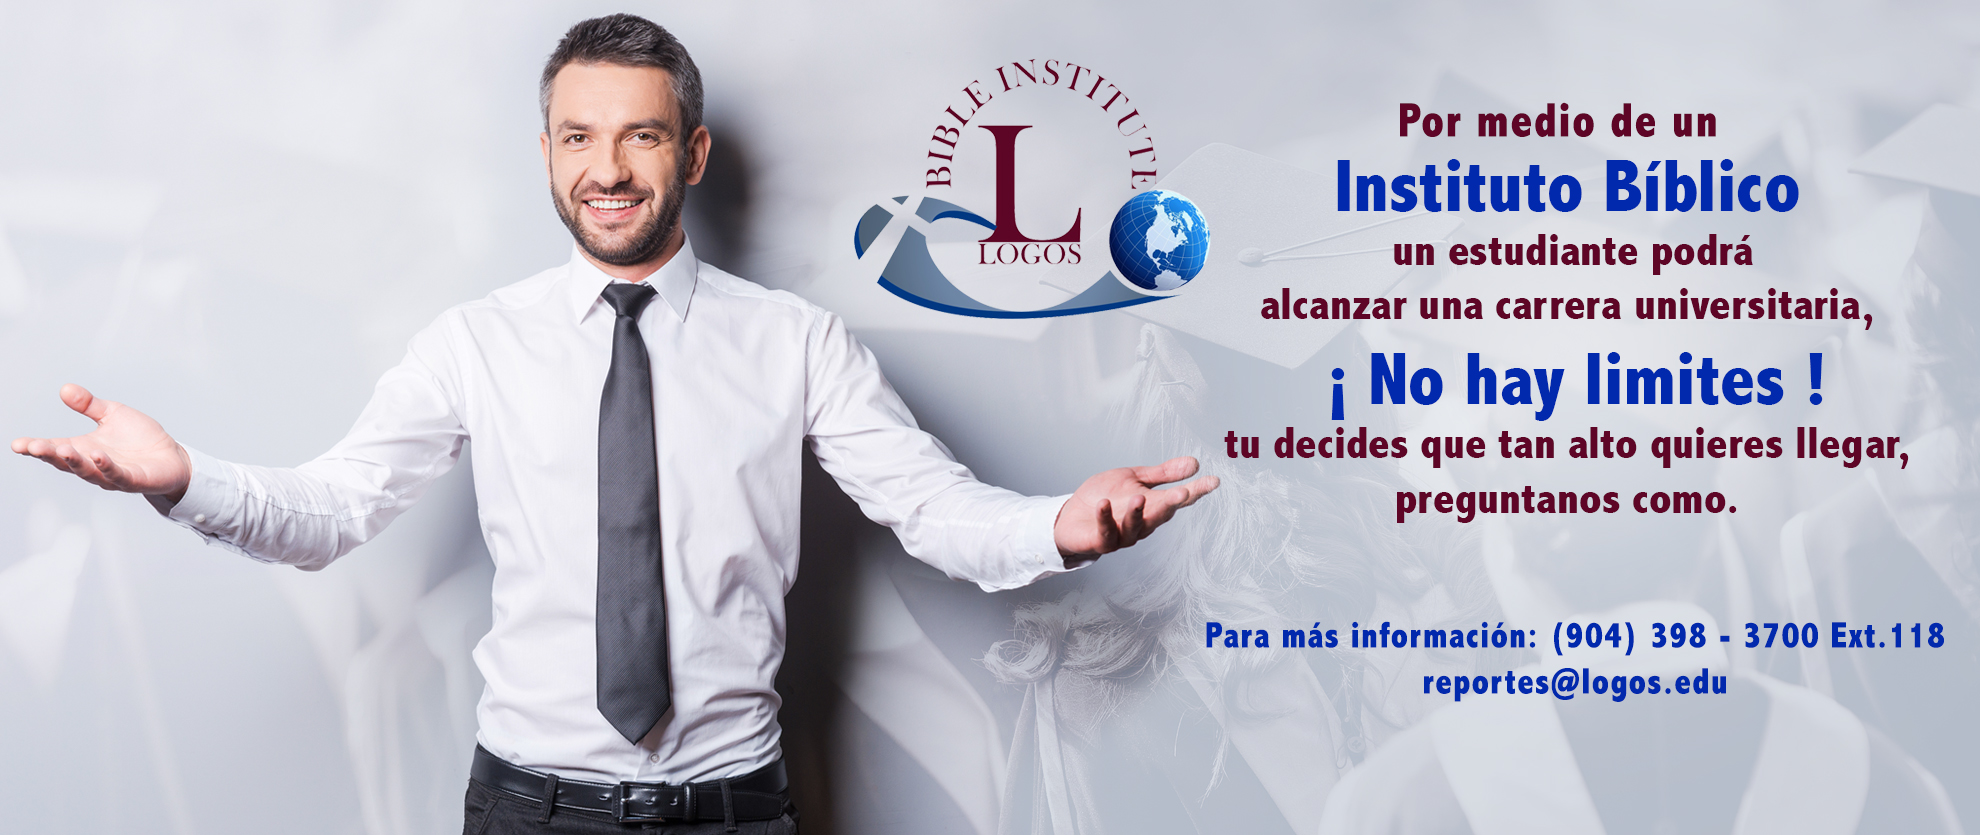 9.Institutoprincipal2017